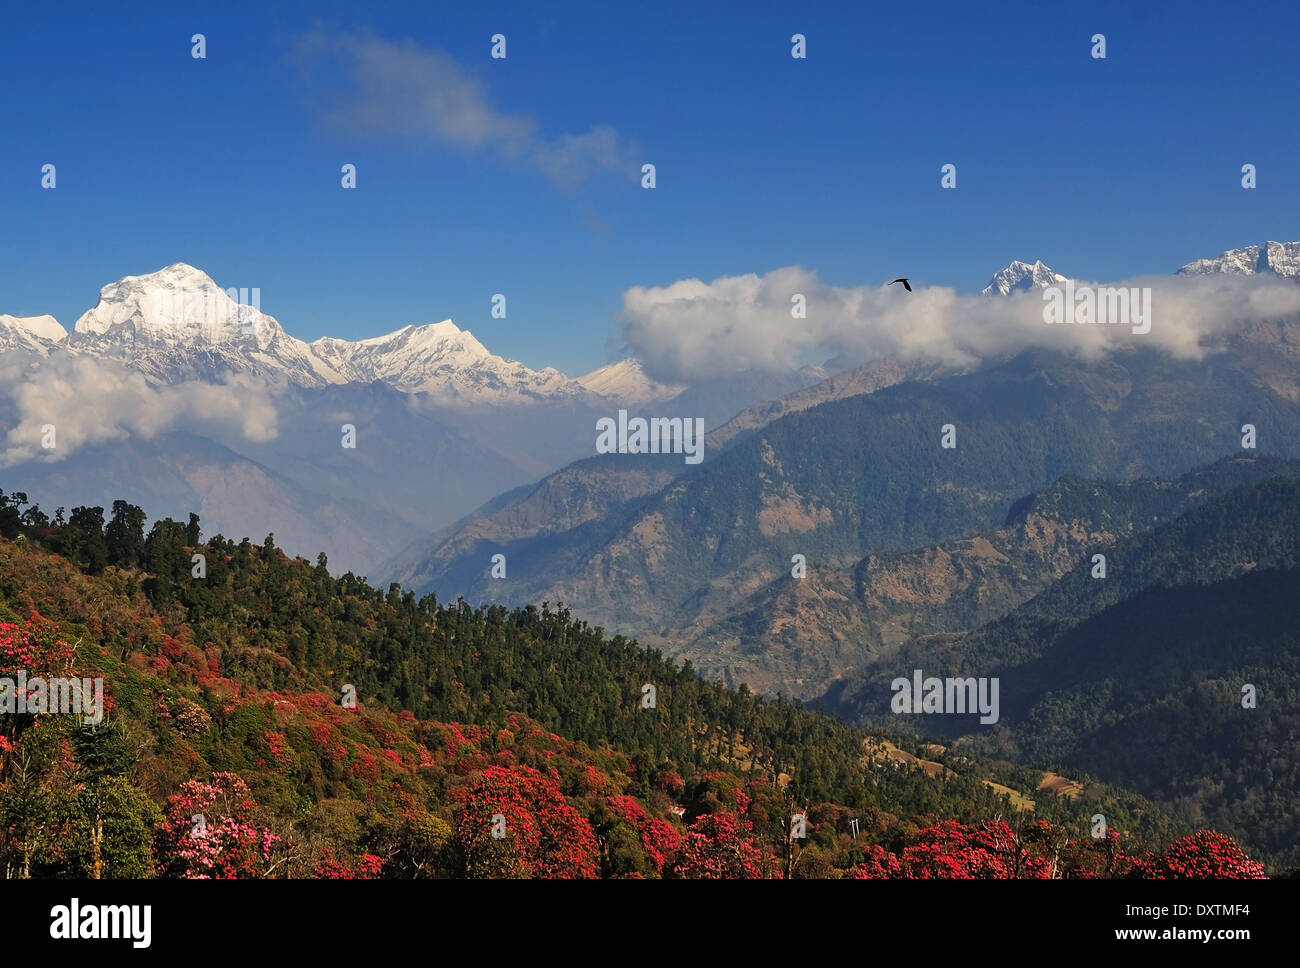 View of South Face of Dhaulagiri and Blooming Rhododendron trees, Annapurna Nepal - Stock Image